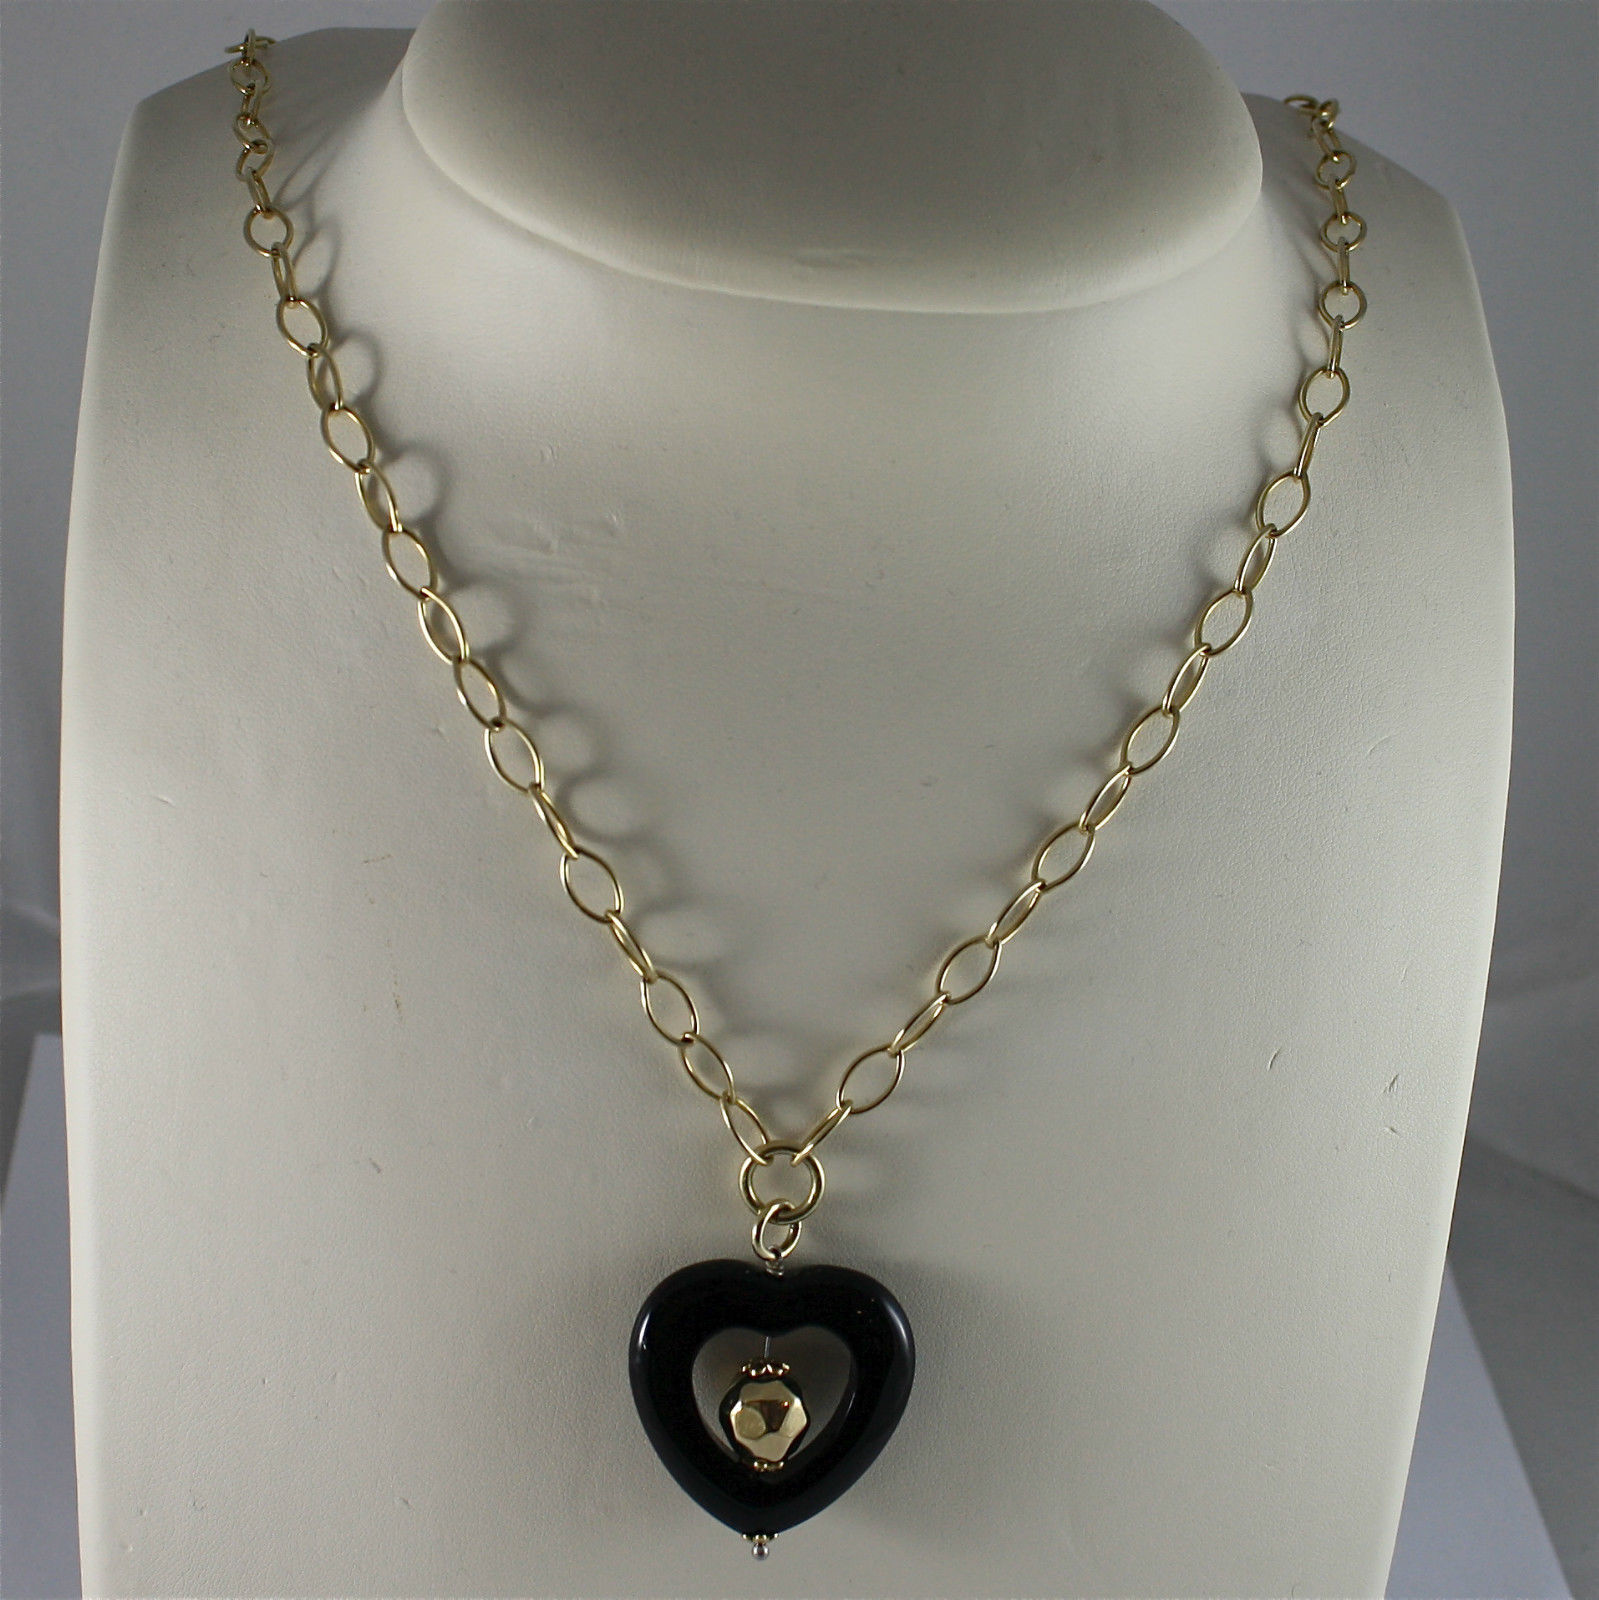 .925 SILVER NECKLACE, GOLD PLATED, CHAIN MESH, ONYX HEART PENDANT, 18,90 INCHES.